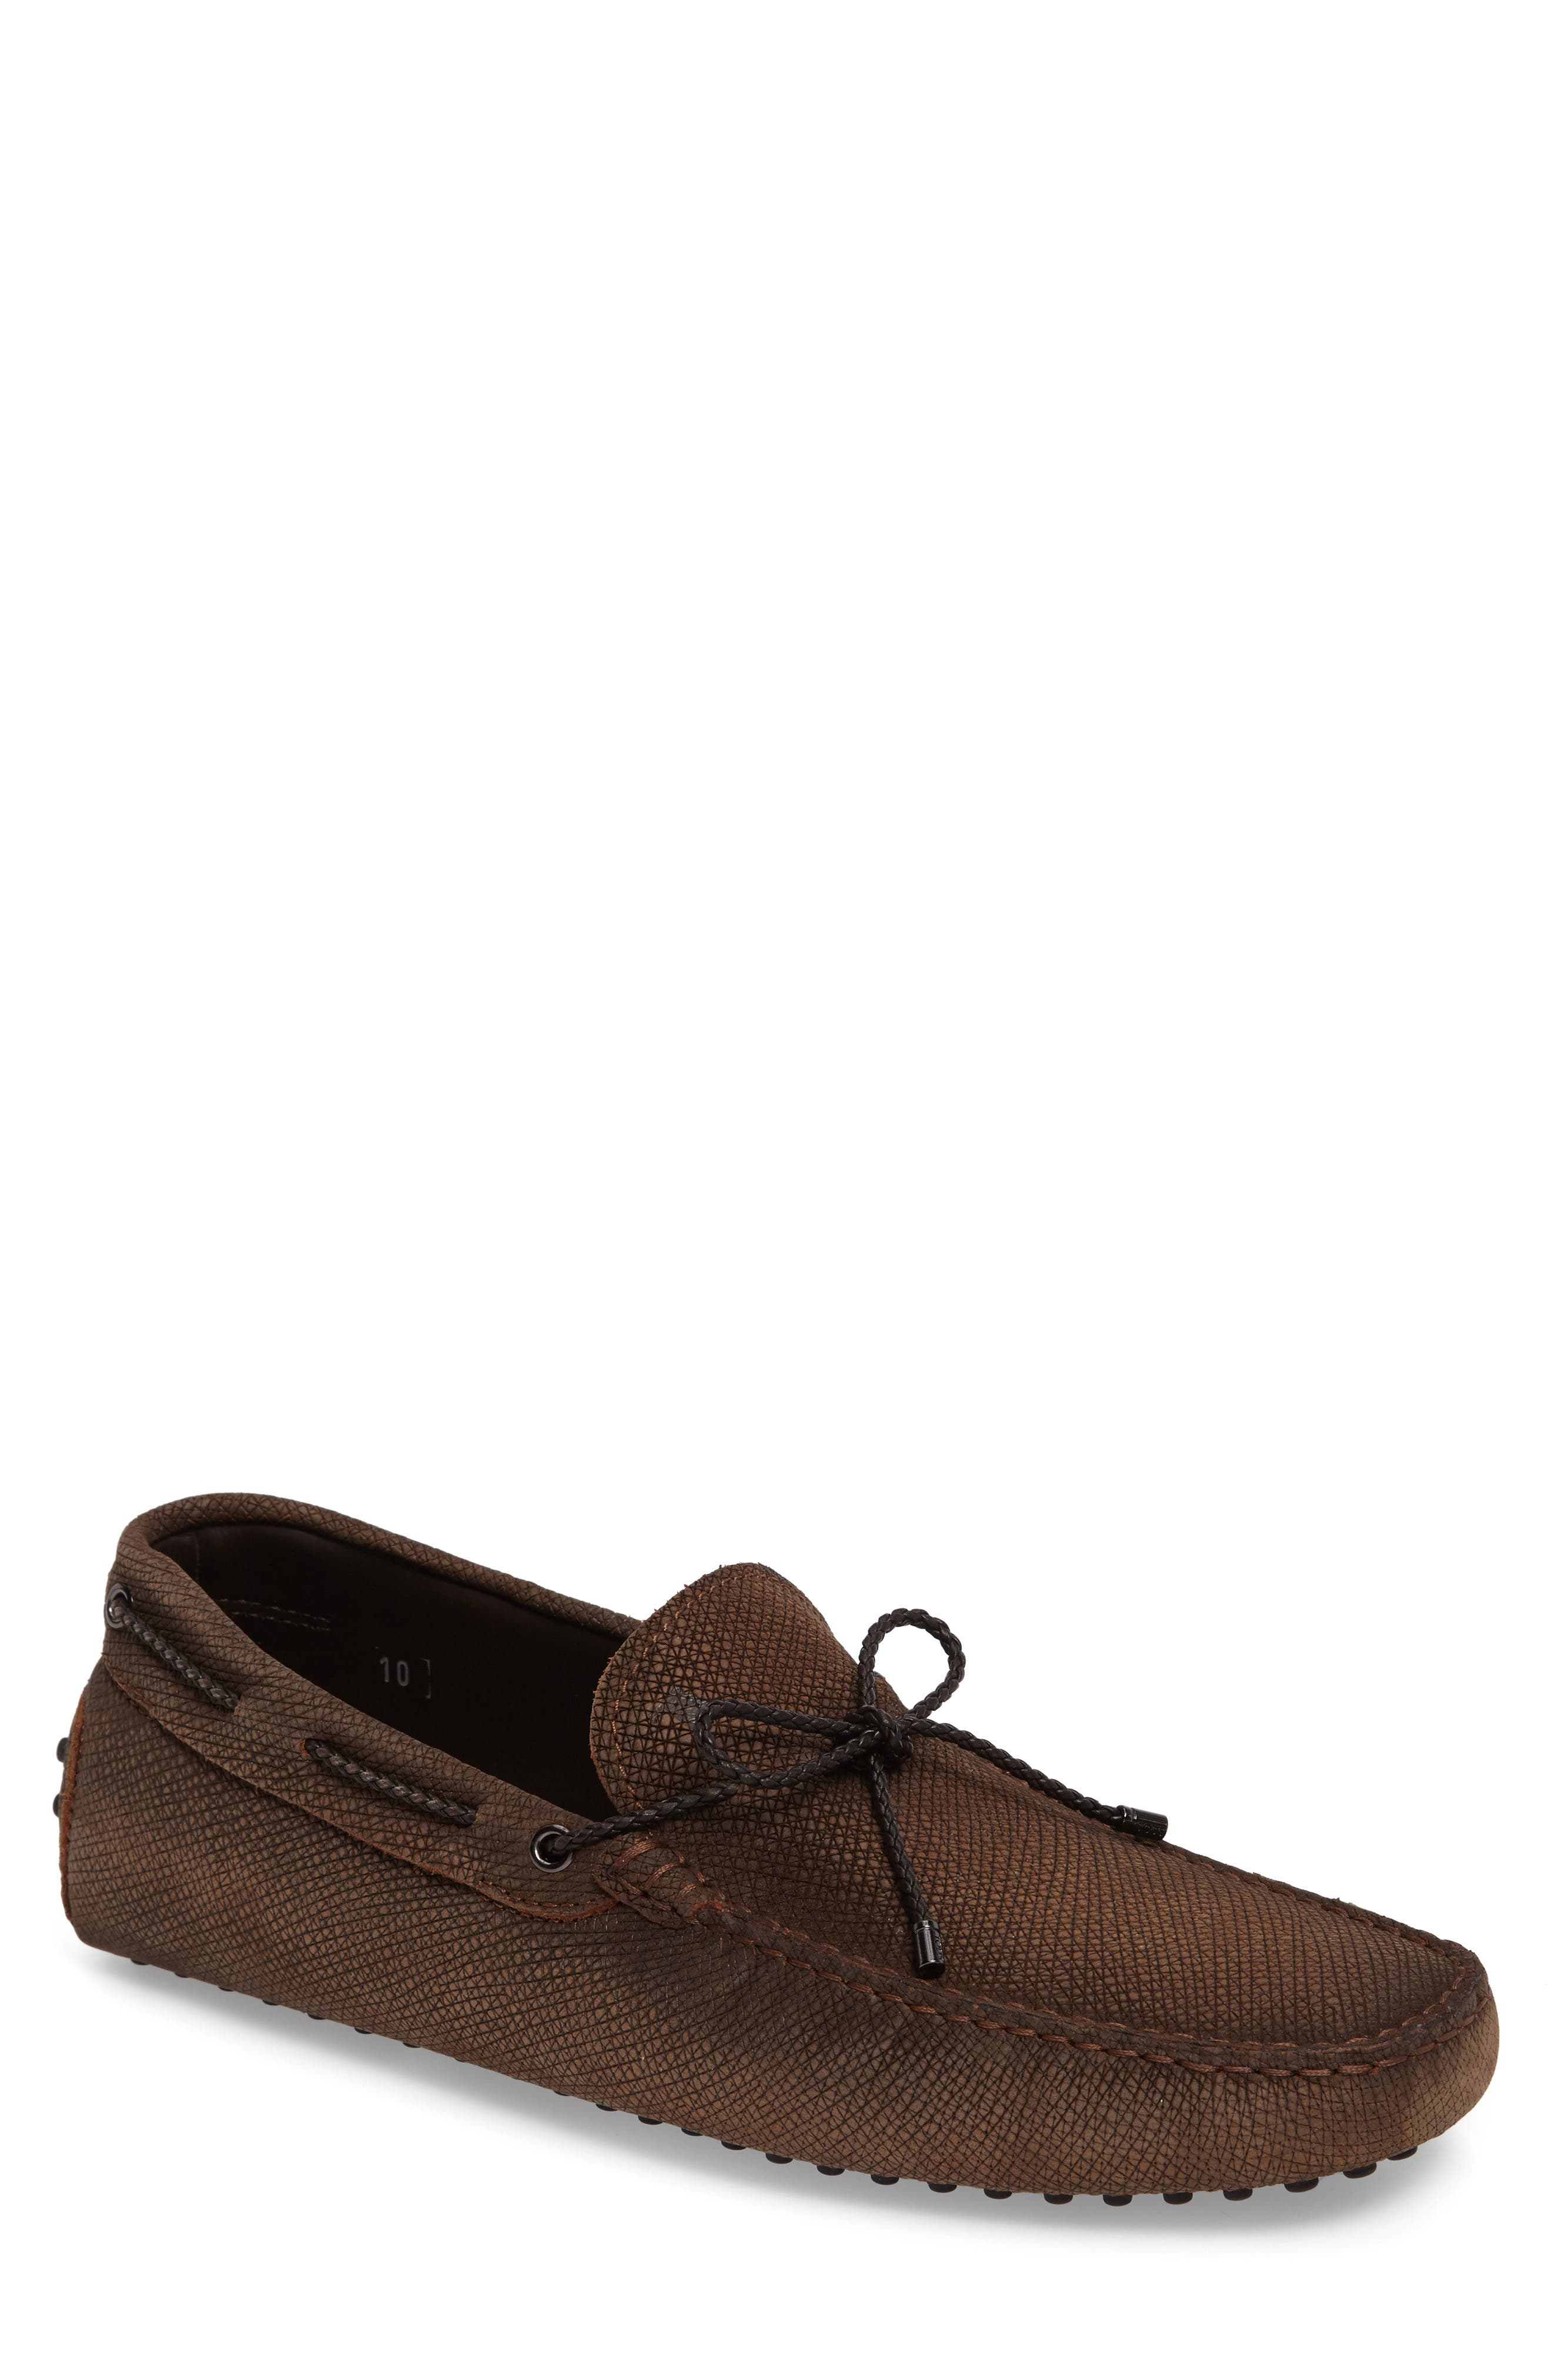 Main Image - Tod's Gommin Textured Driving Shoe (Men)